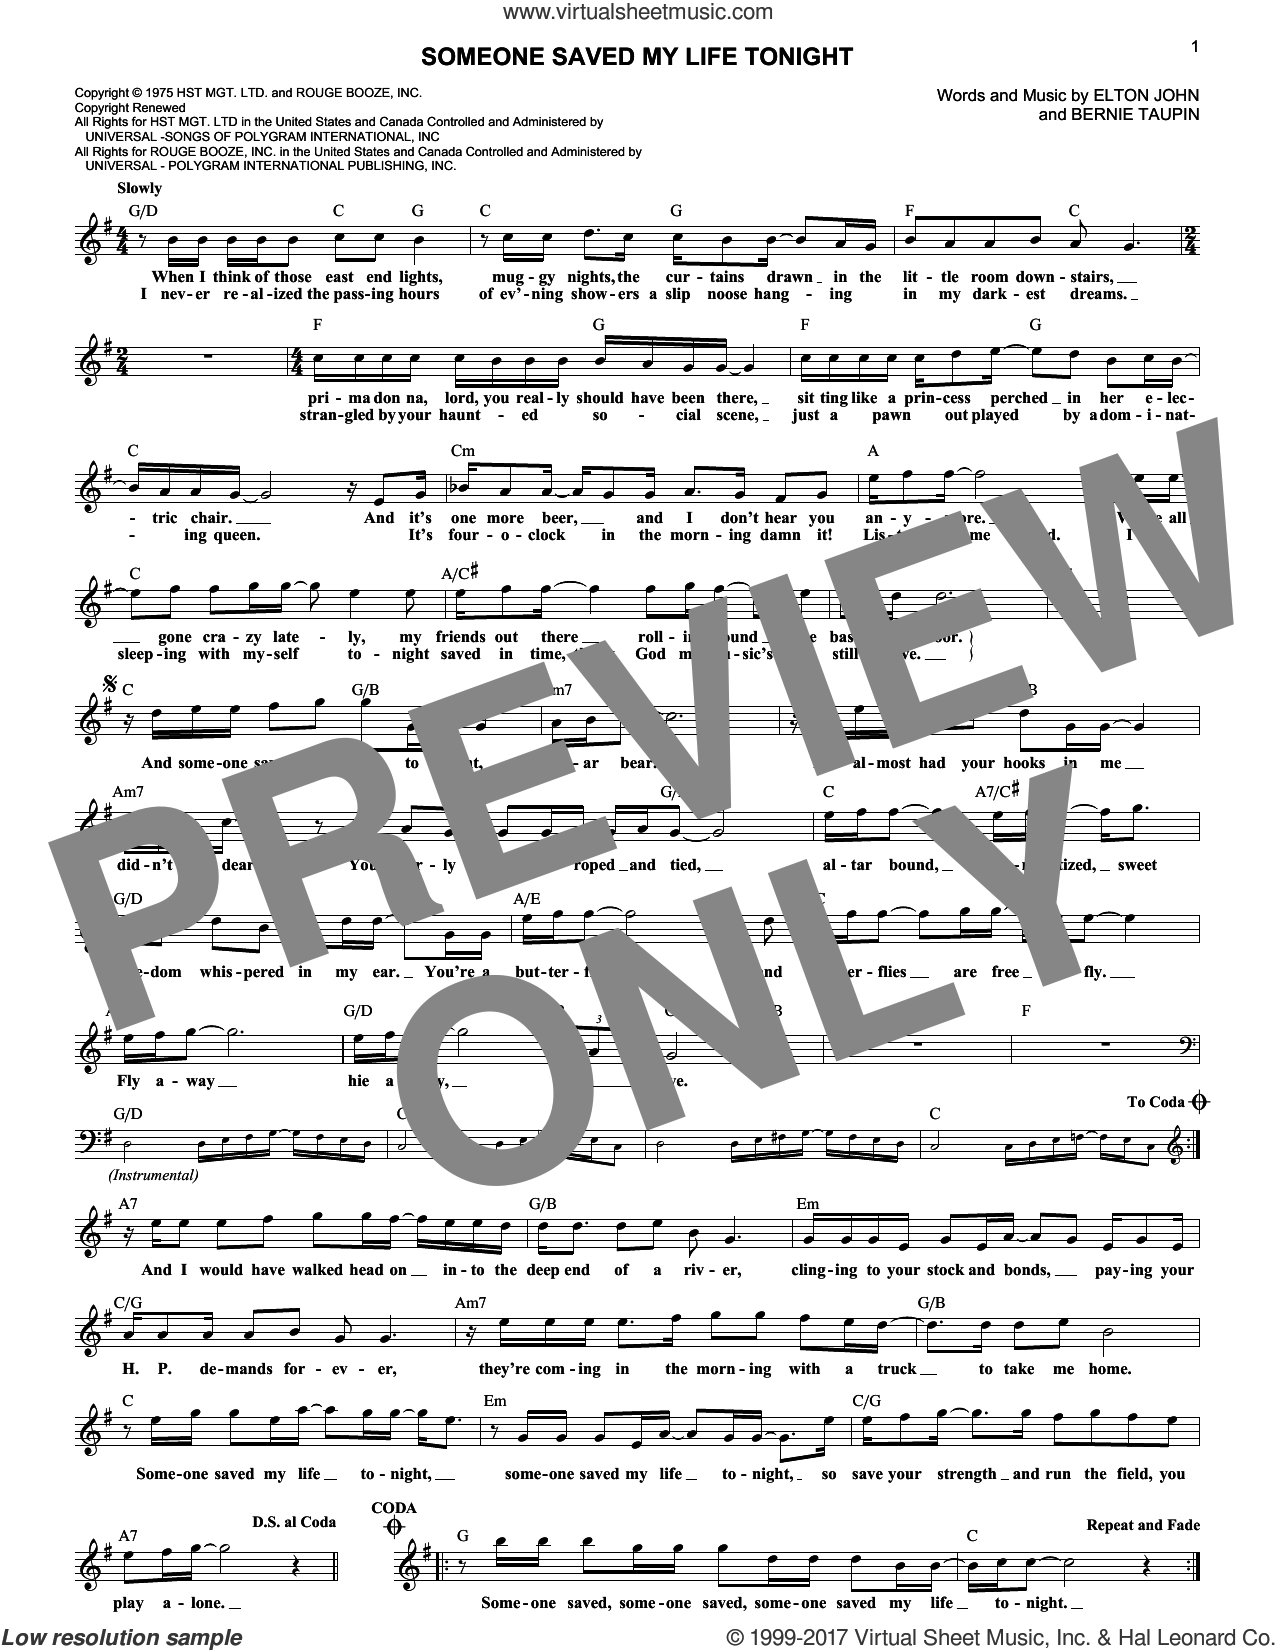 Someone Saved My Life Tonight sheet music for voice and other instruments (fake book) by Elton John and Bernie Taupin, intermediate. Score Image Preview.